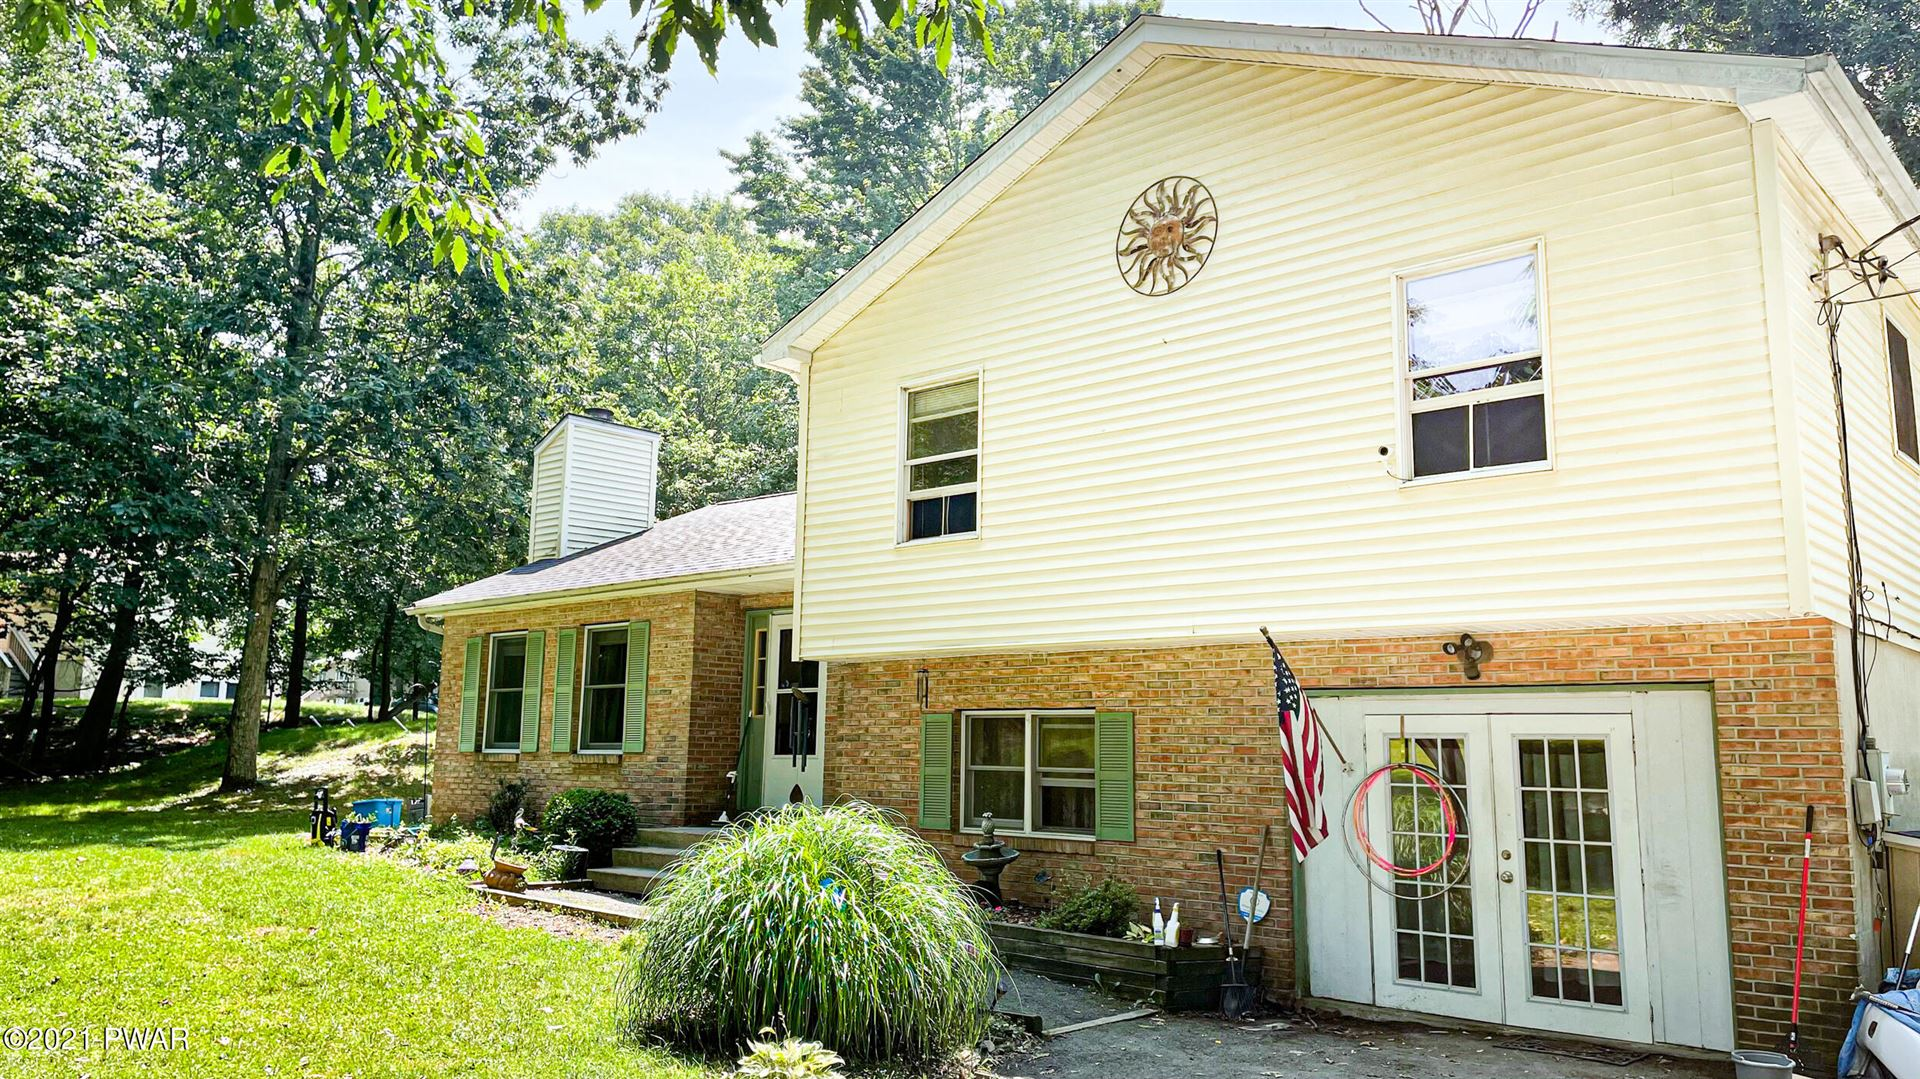 Photo of 103 Lincoln Ct, Milford, PA 18337 (MLS # 21-2995)